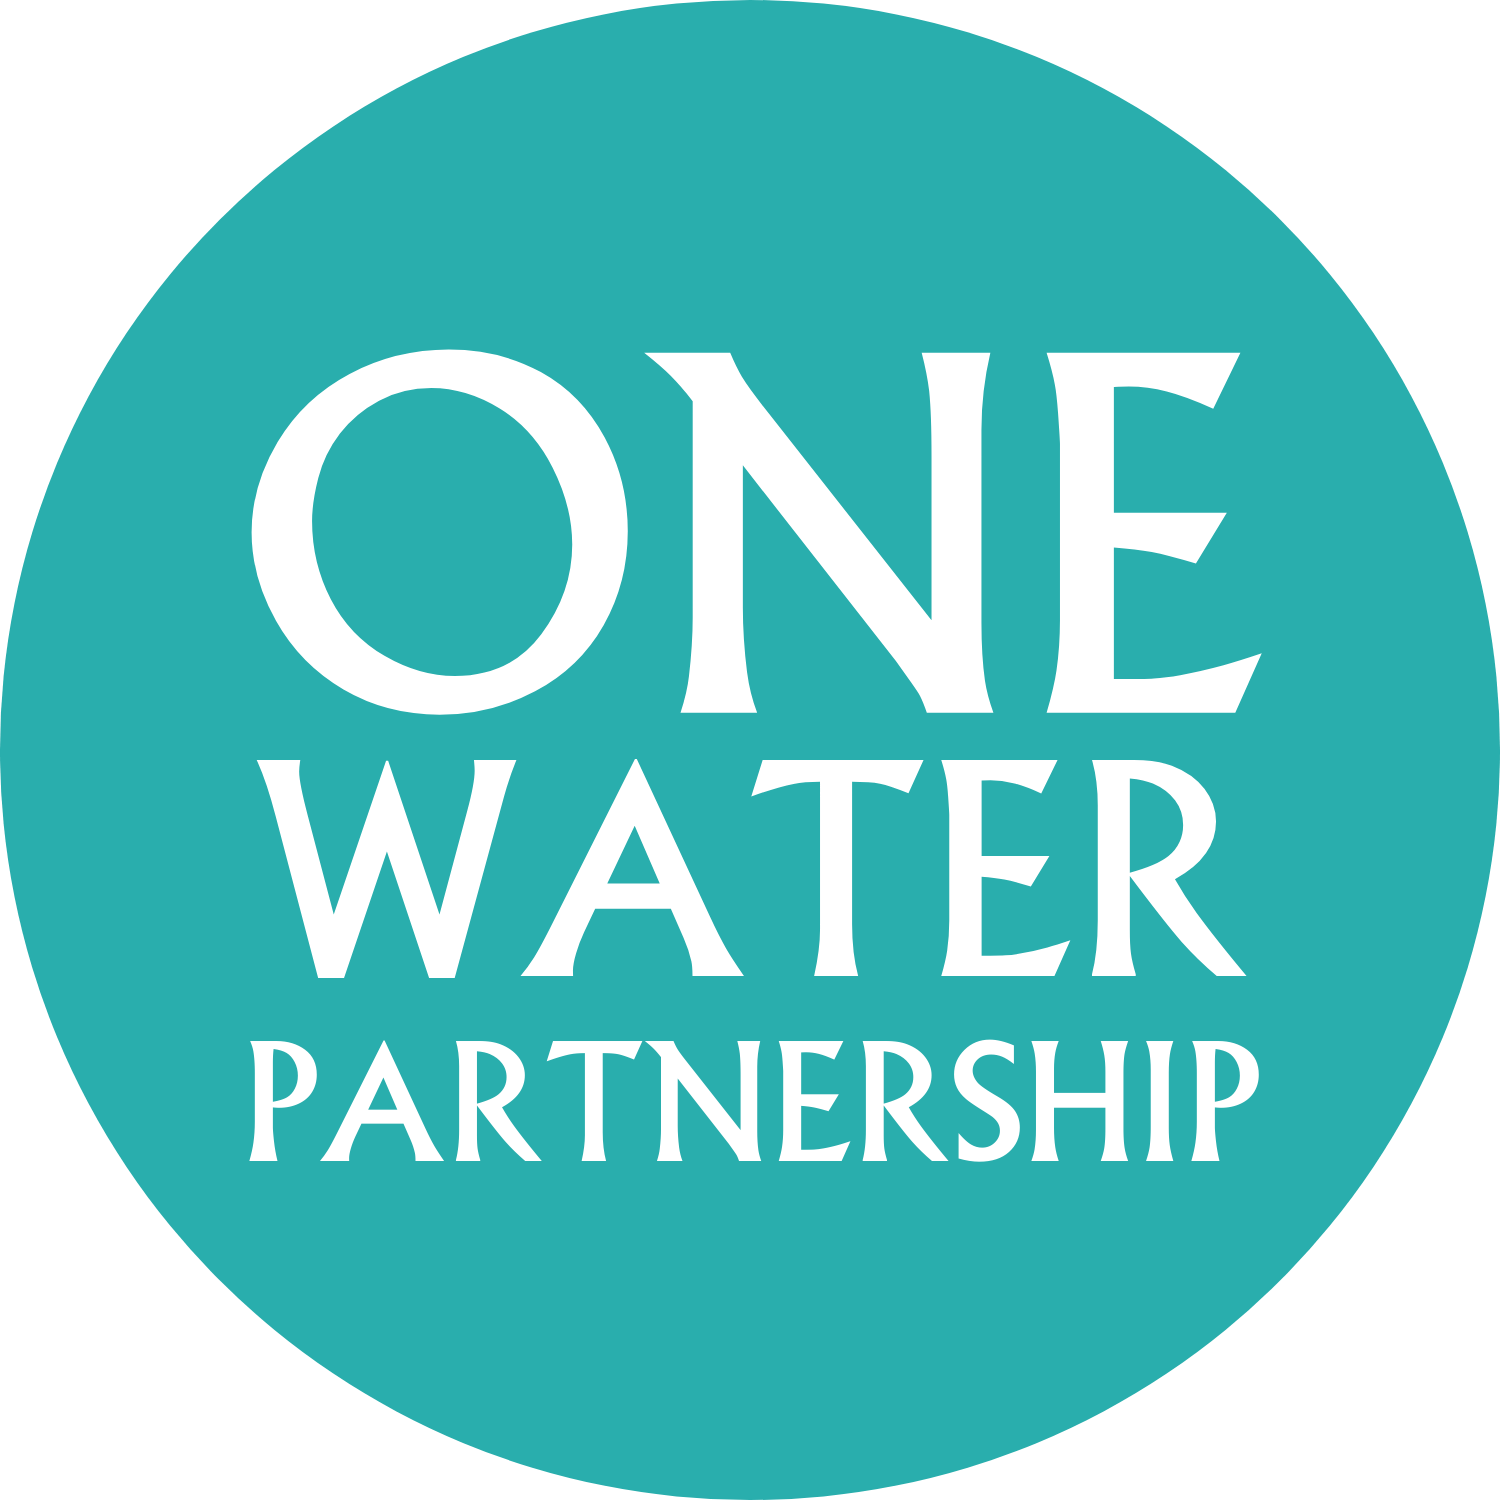 One_Water_Partnership_Logo.png